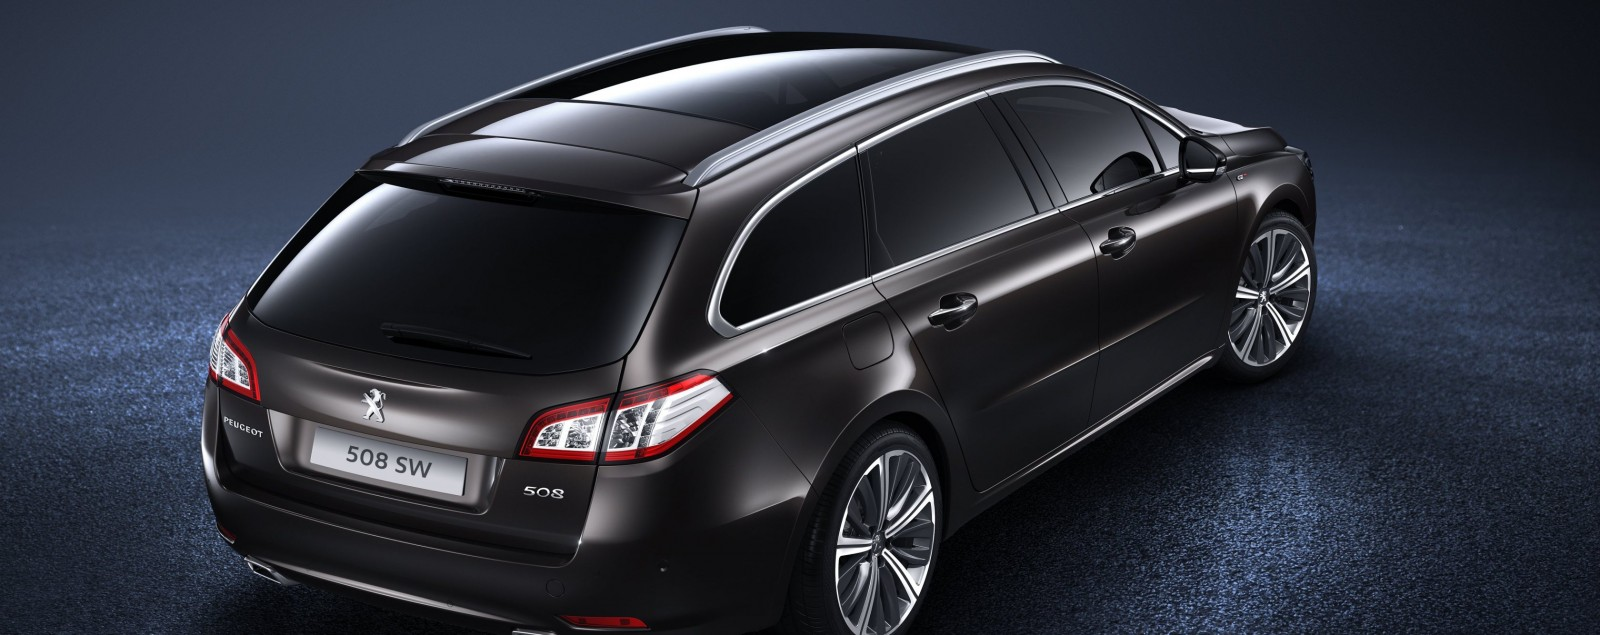 2015 Peugeot 508 Facelifted With New LED DRLs, Box-Design Beams and Tweaked Cabin Tech 25